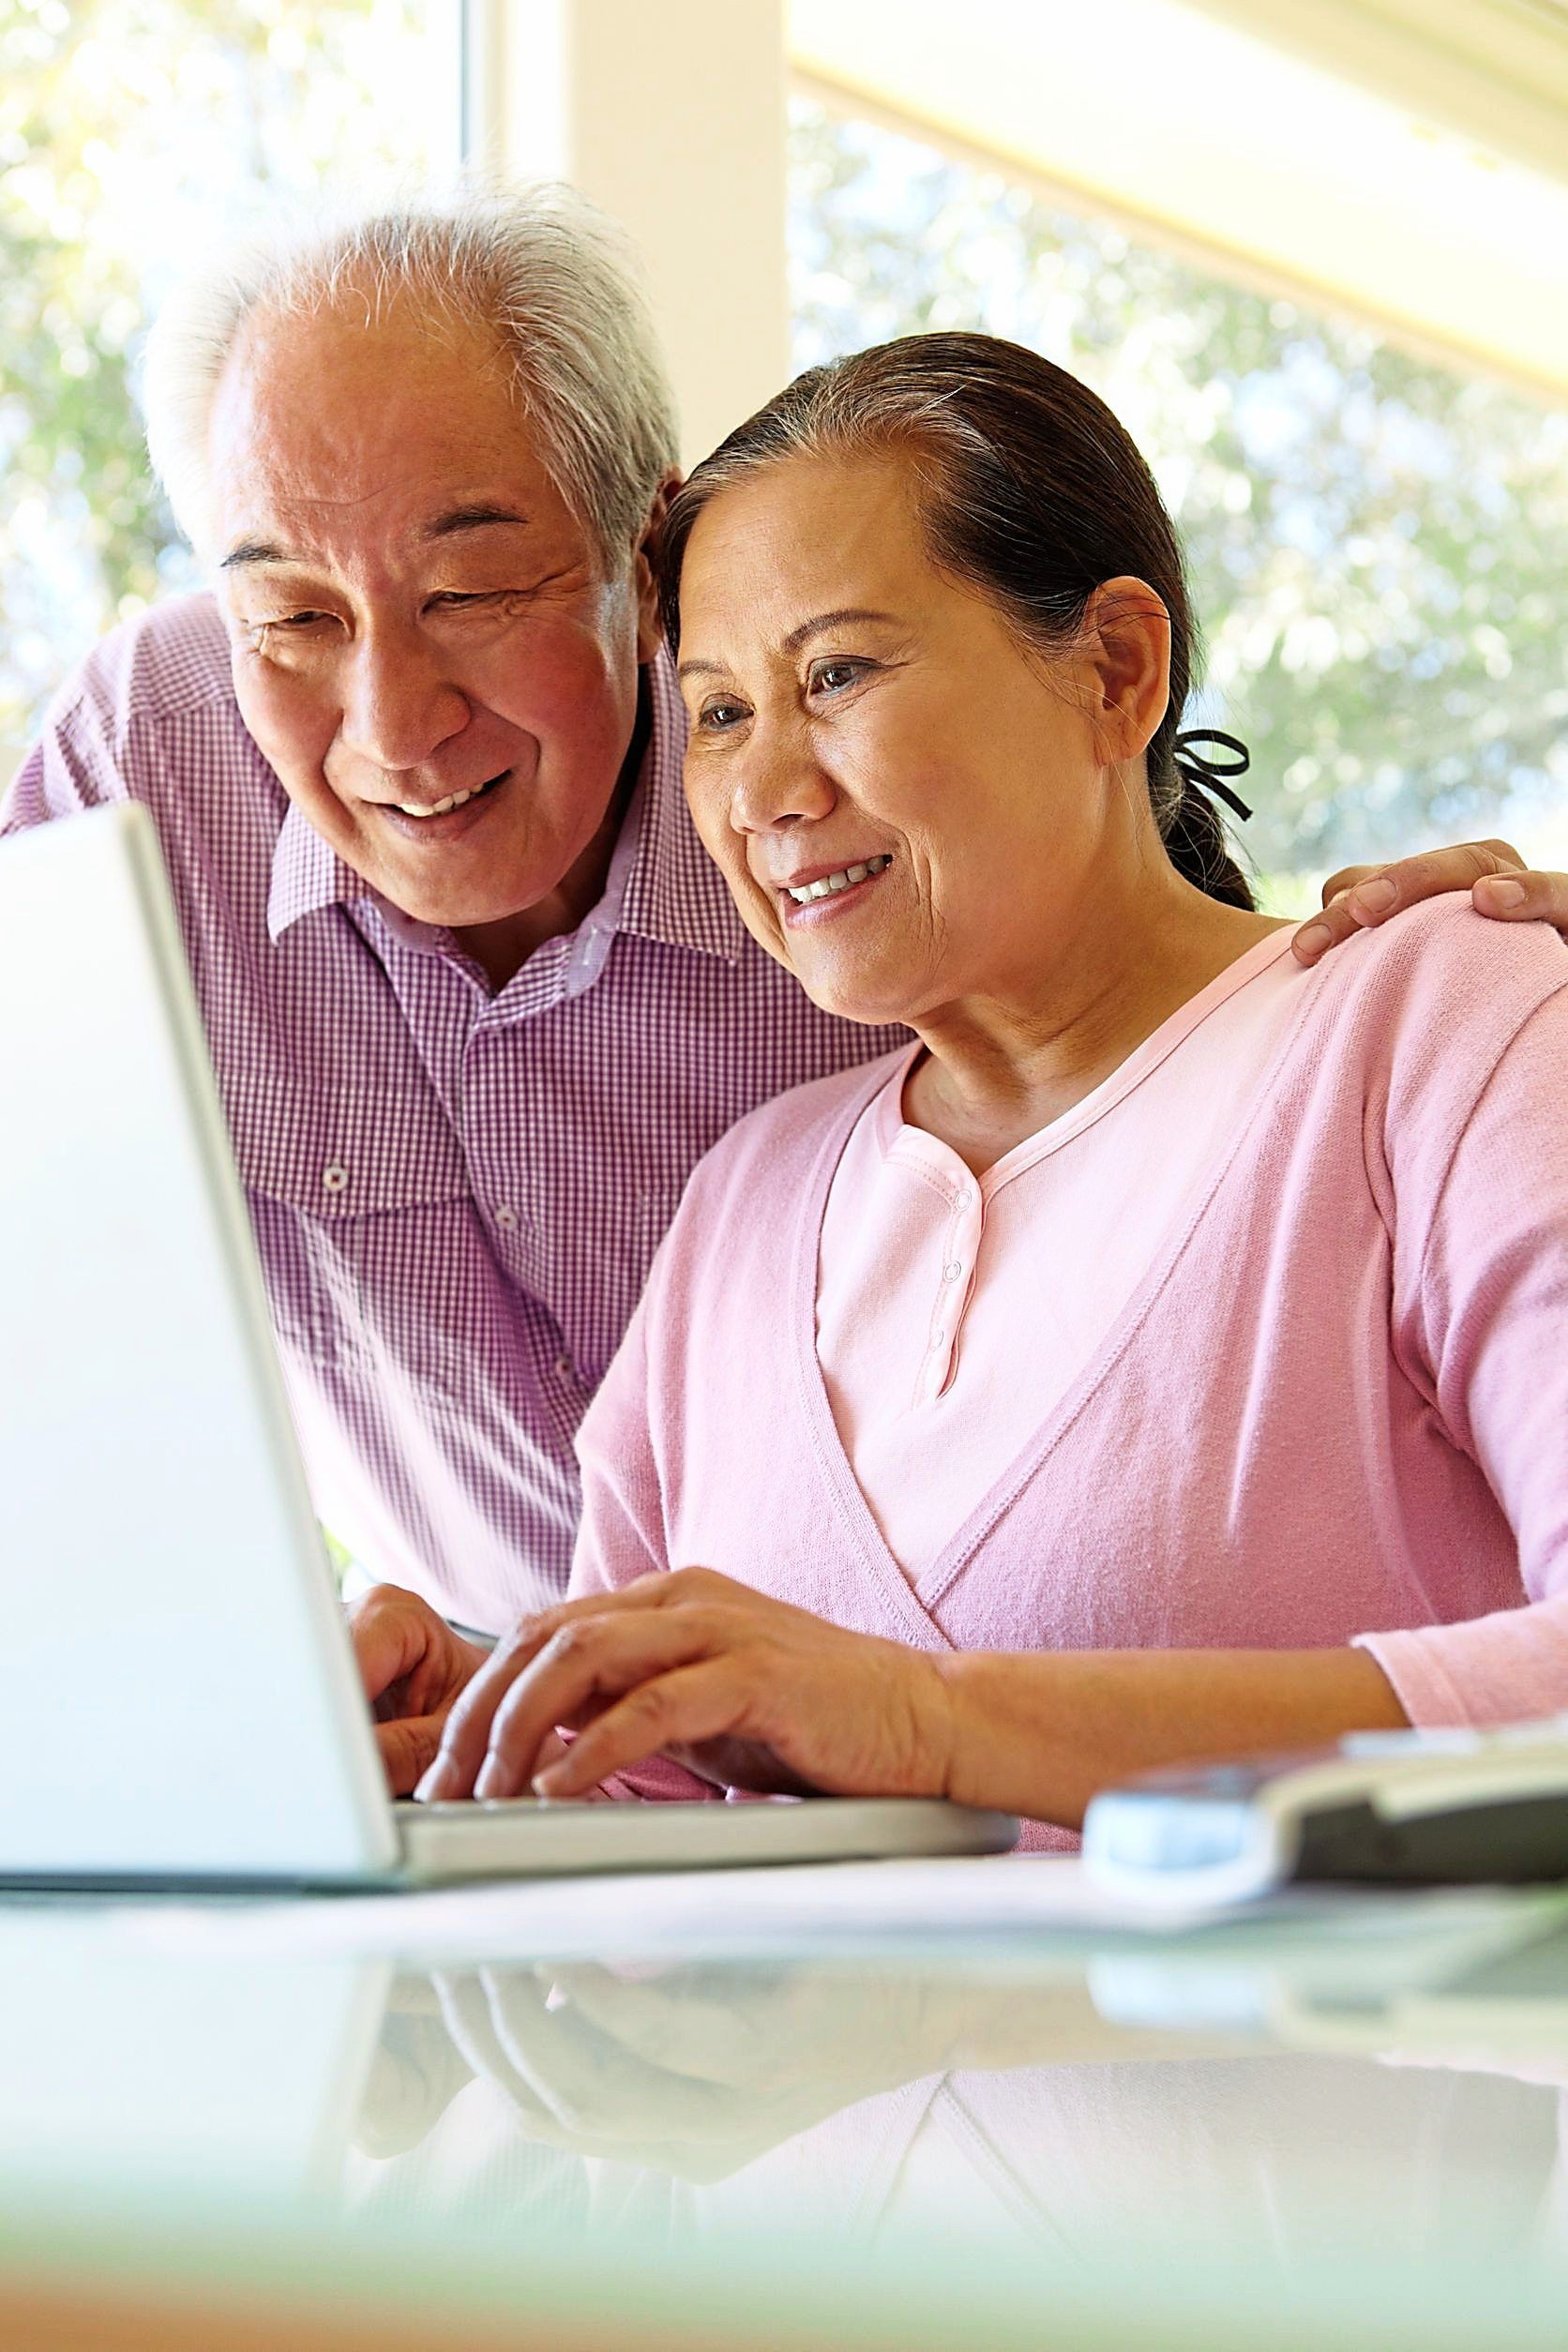 Video-calling platforms allow older people to connect with family and friends who may live in another city or country. — 123rf.com